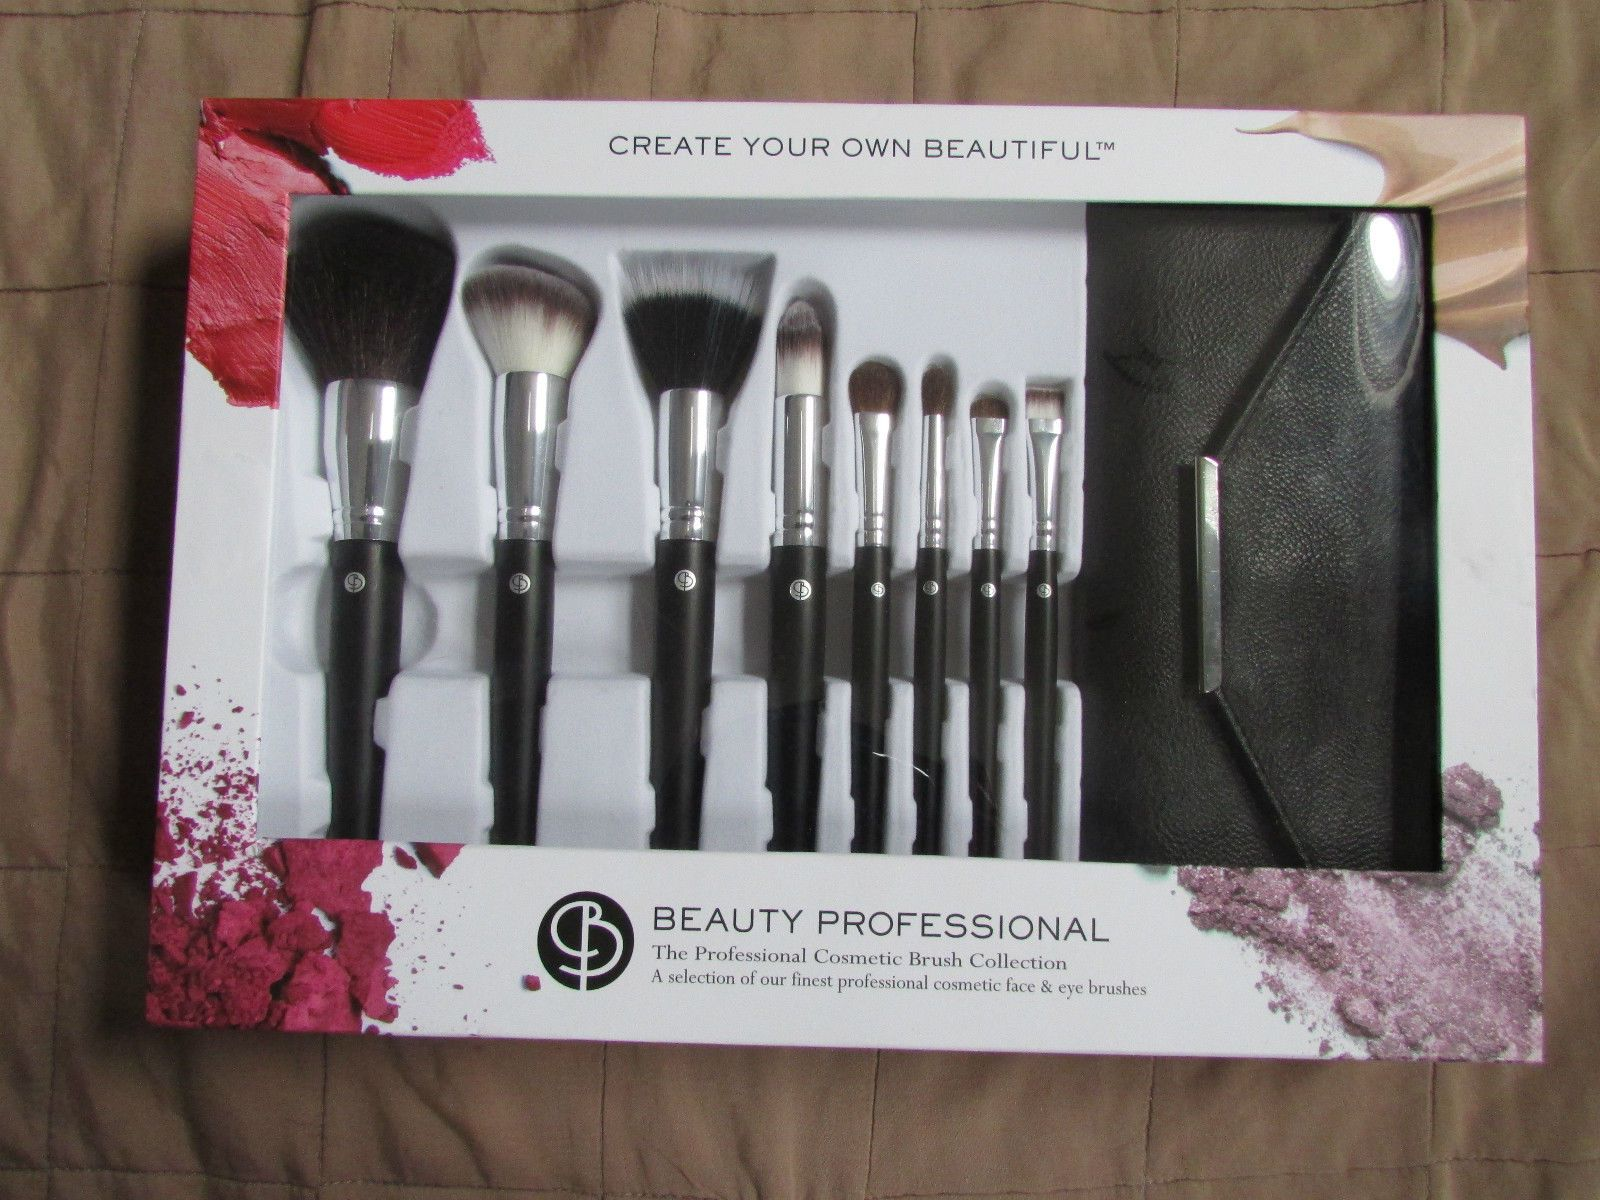 Beauty Professional Create your Own Beautiful Makeup Brush